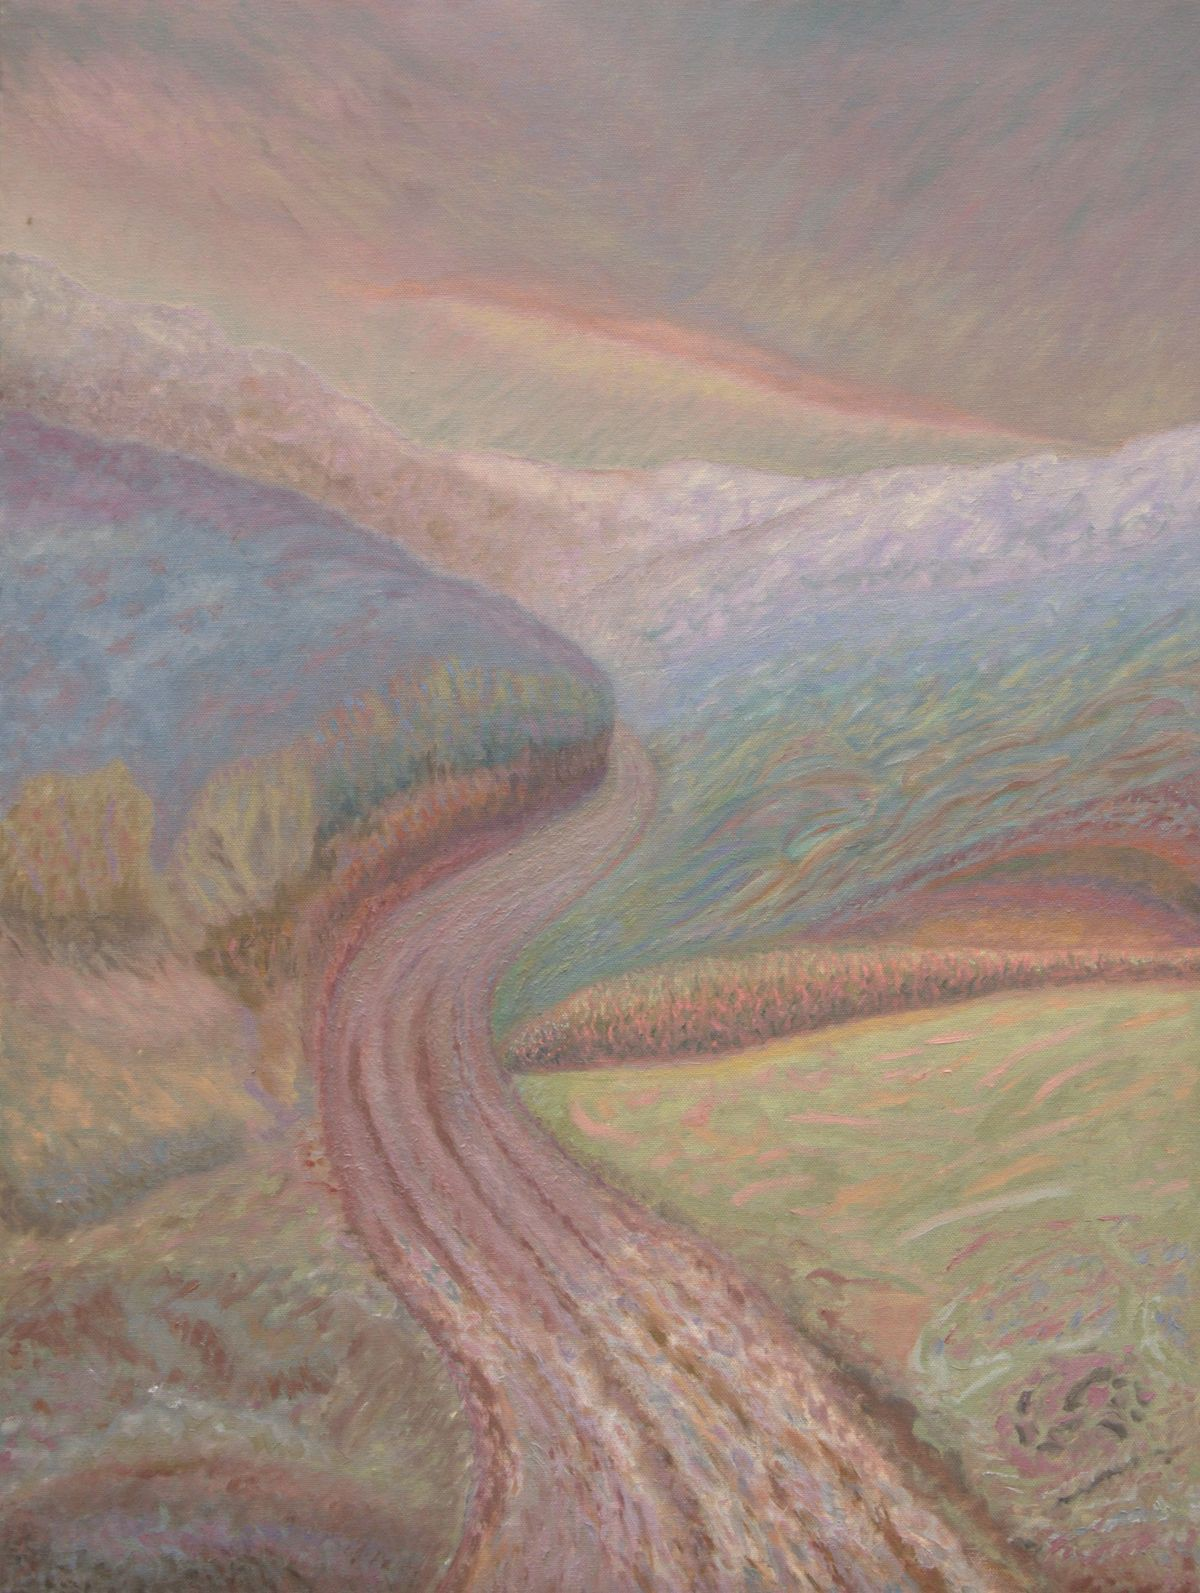 3 (oil on canvas, 60.5x80 cm), 2009-10